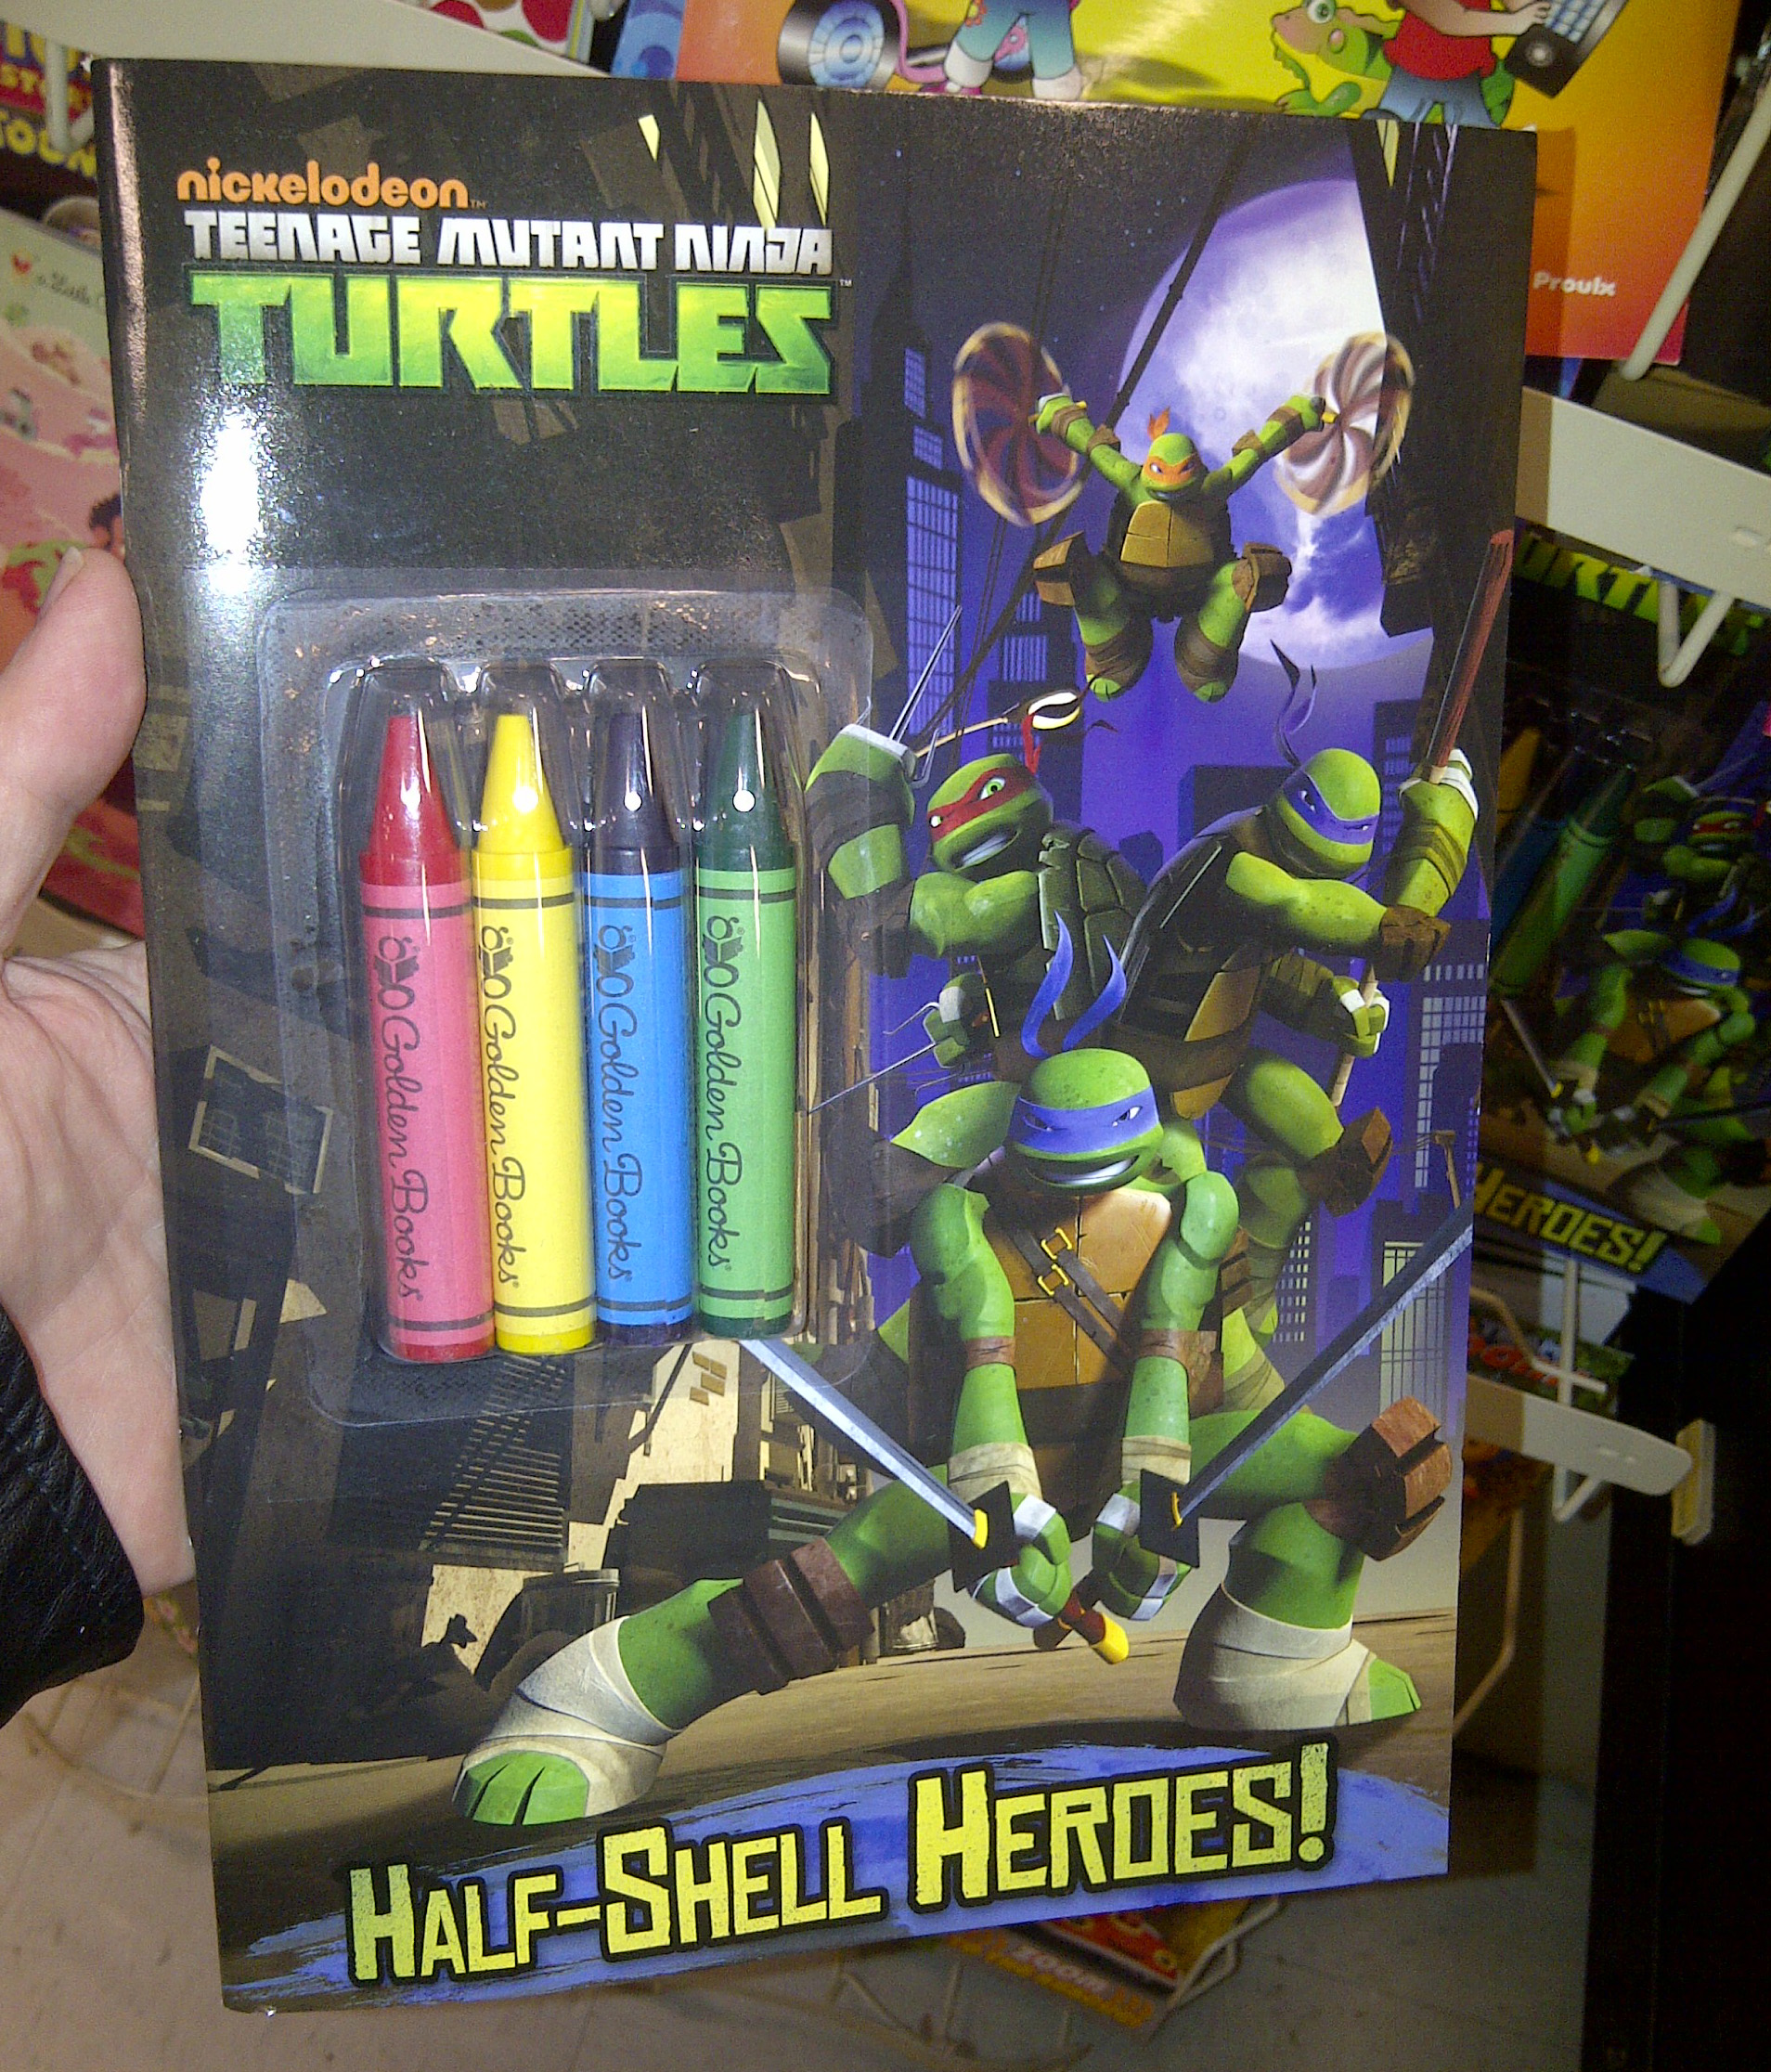 new teenage mutant ninja turtles coloring book in stores - Teenage Mutant Ninja Turtles Coloring Book